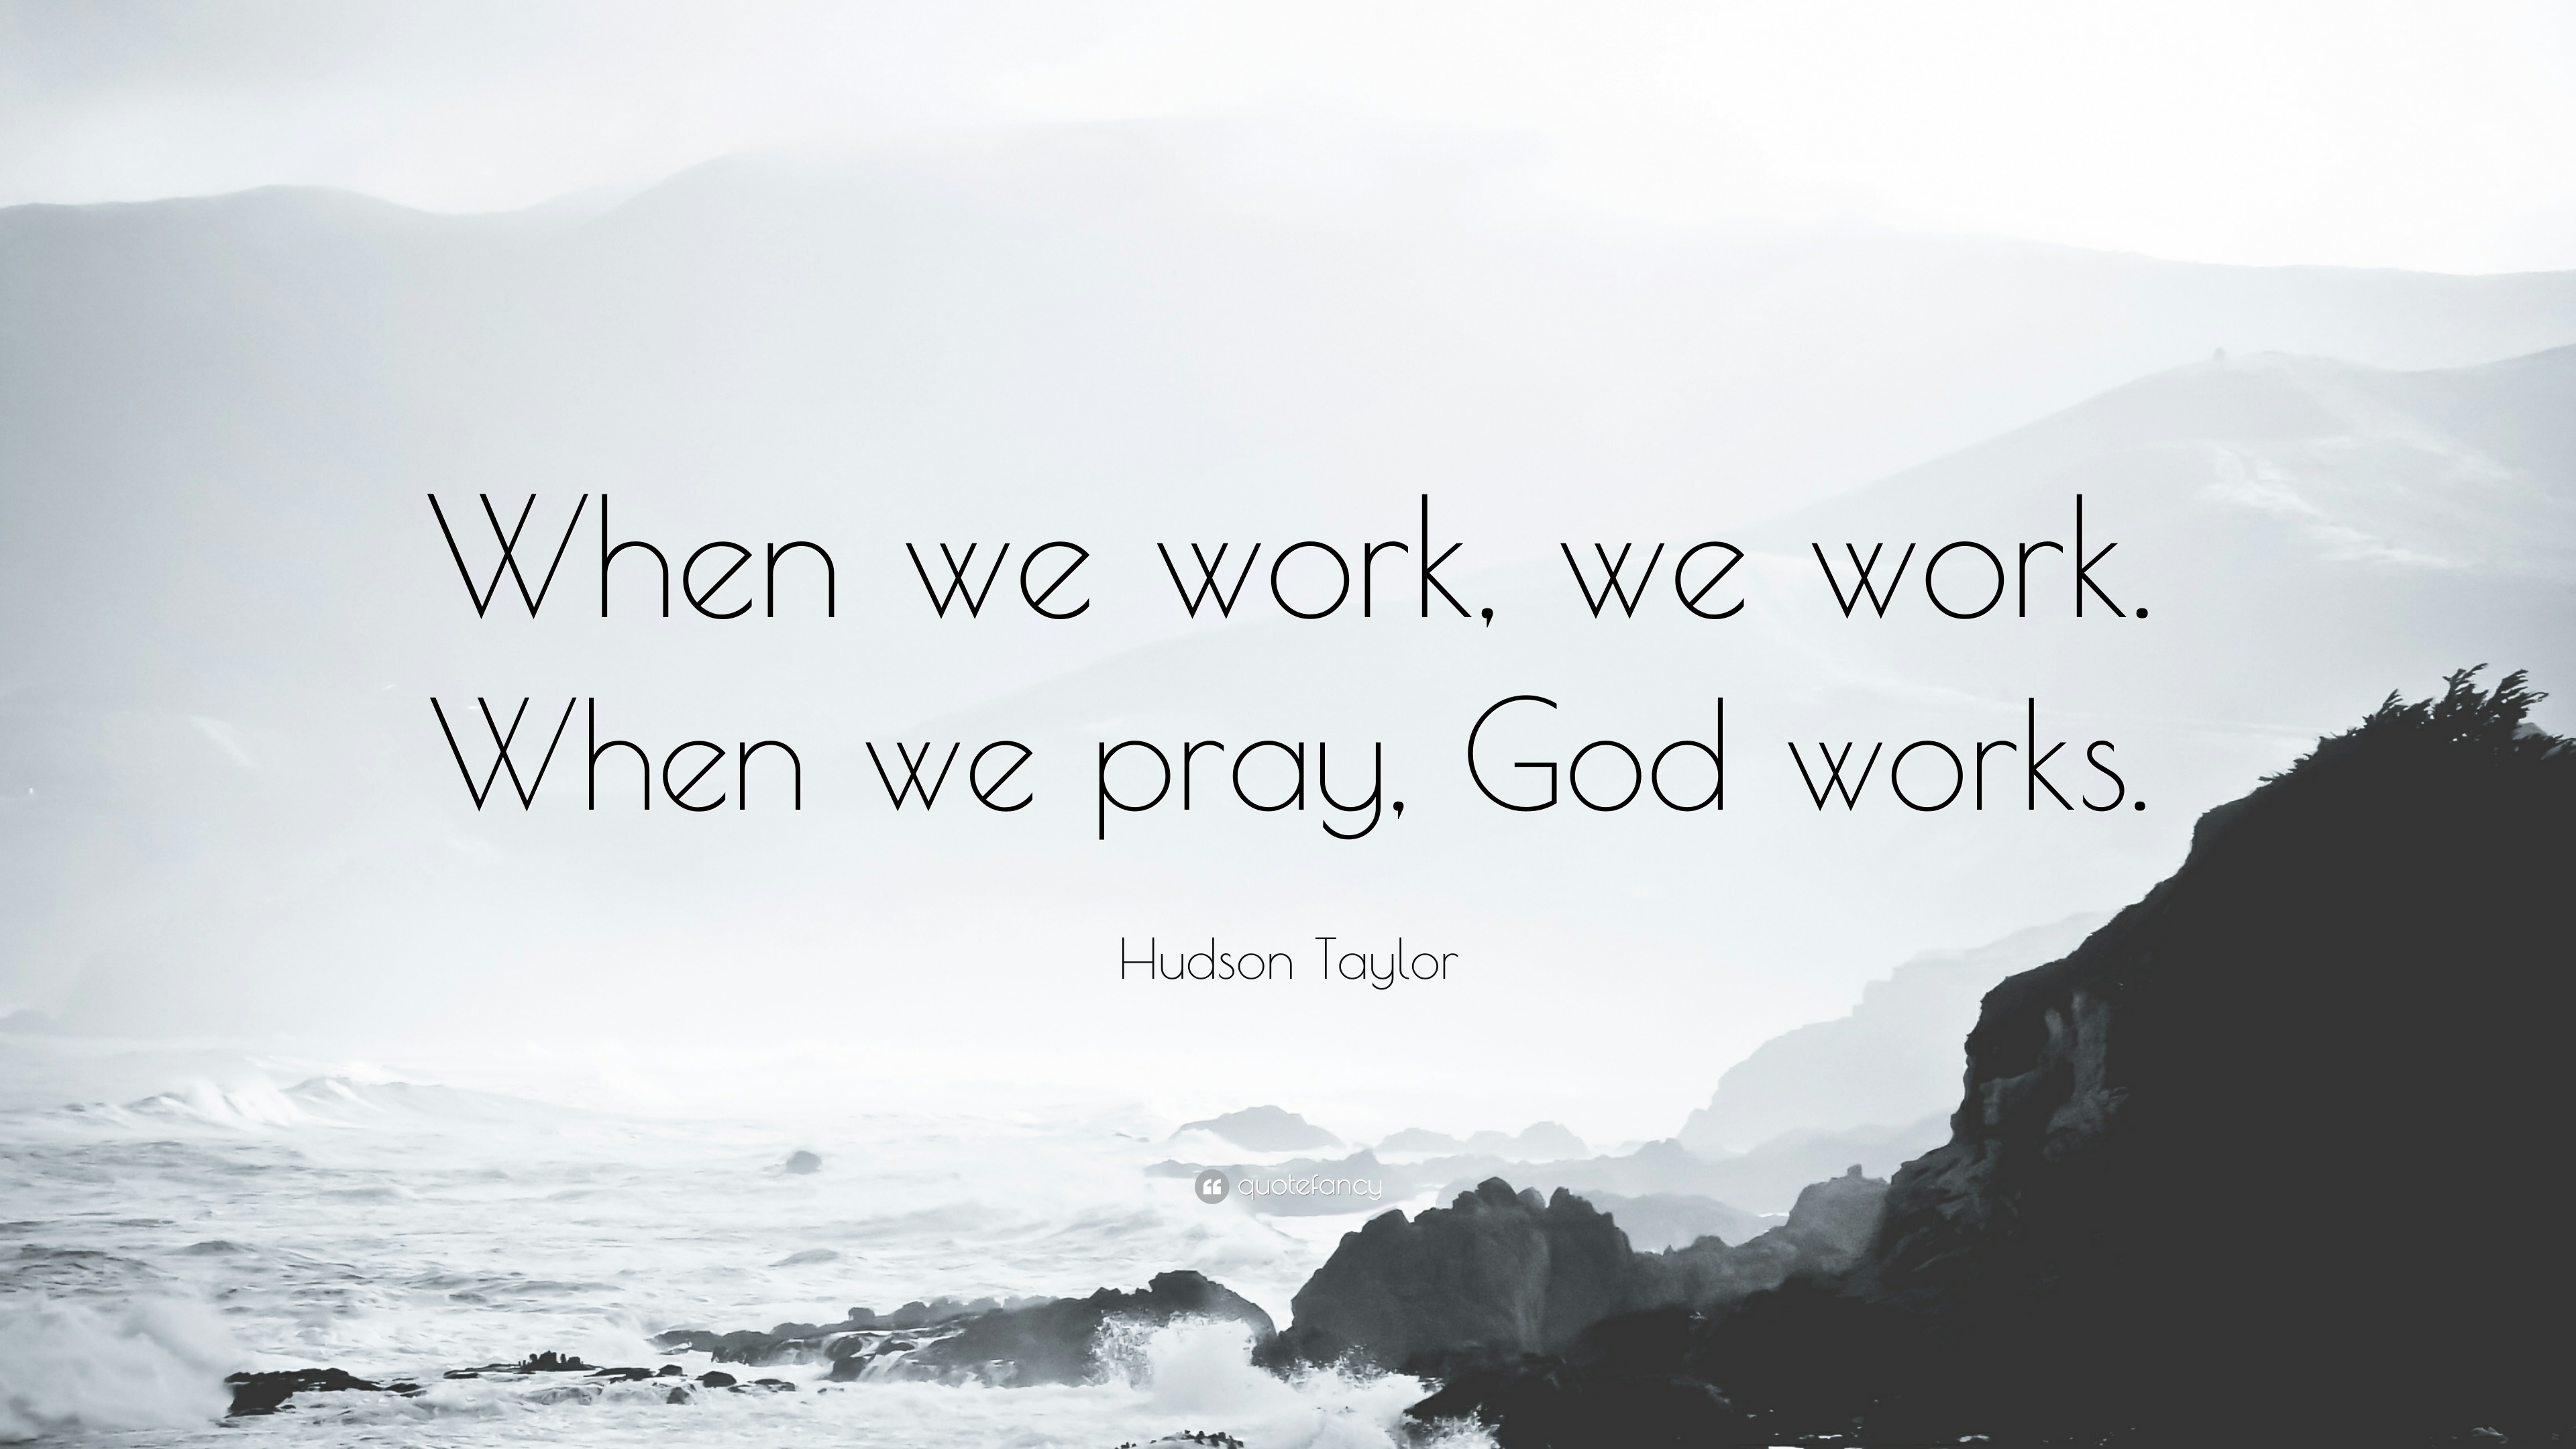 christian quotes (40 wallpapers) - quotefancy